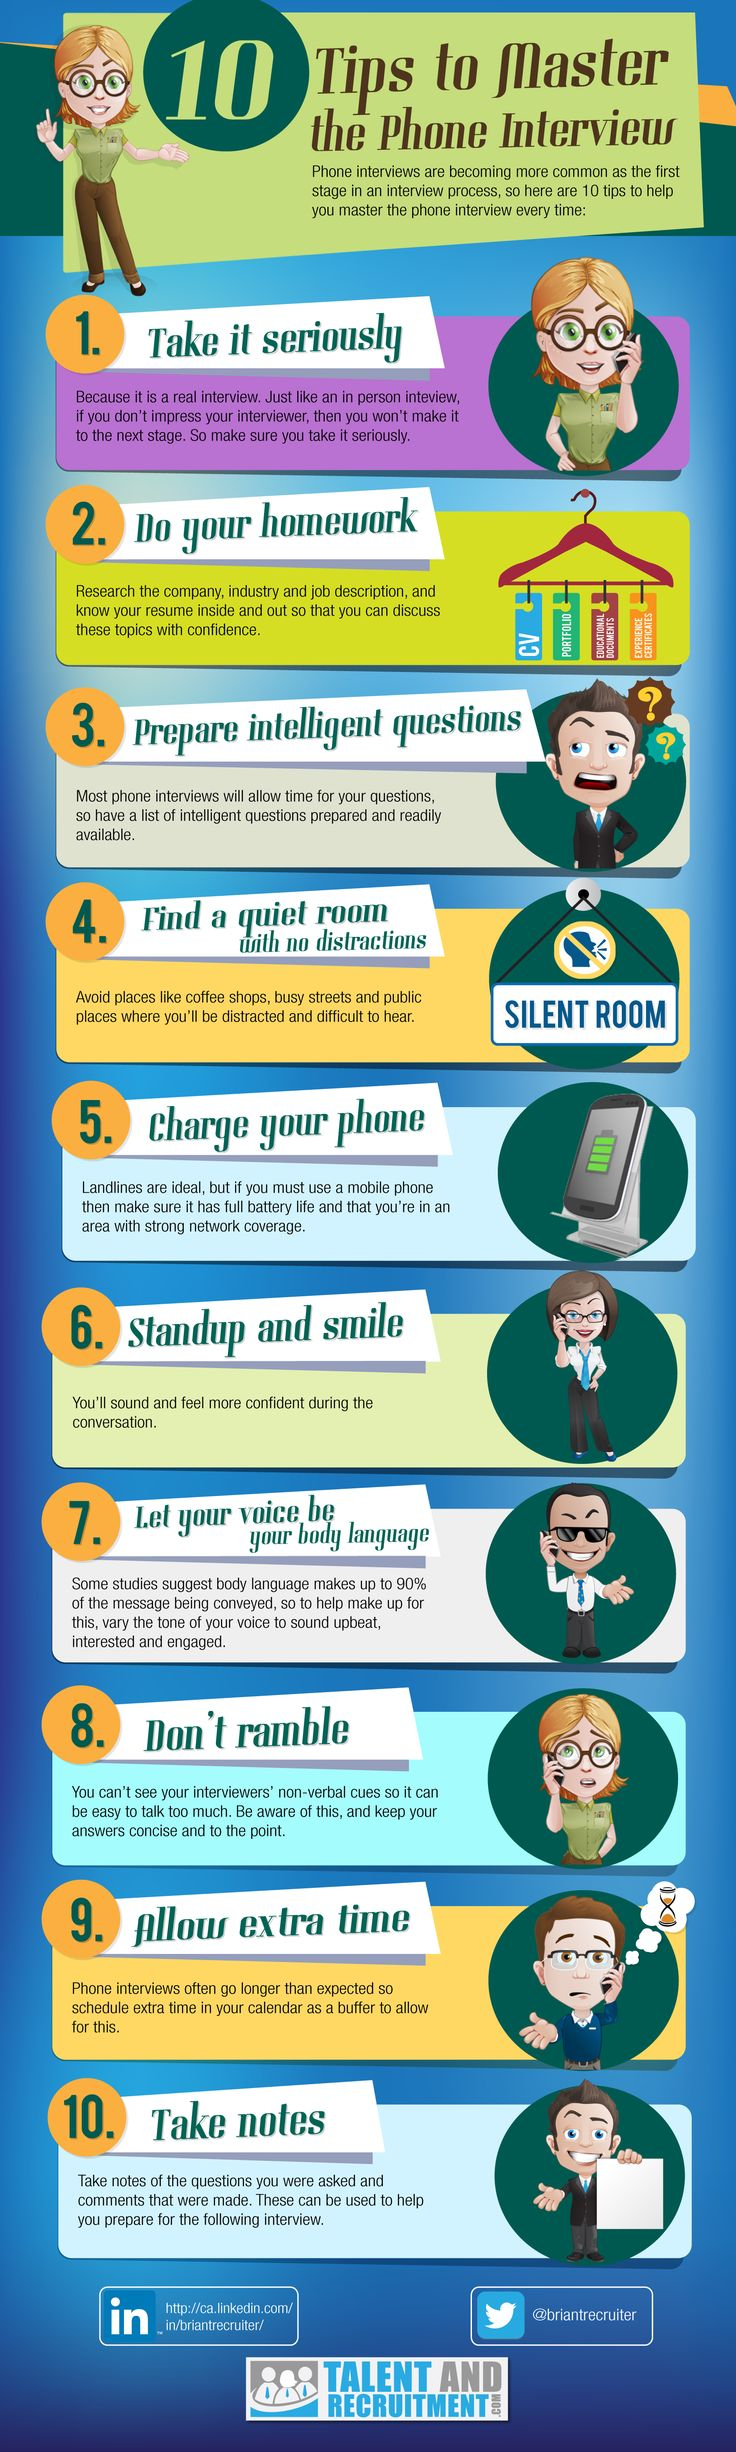 10 Tips for the Perfect Phone Interview [INFOGRAPHIC] #veredus